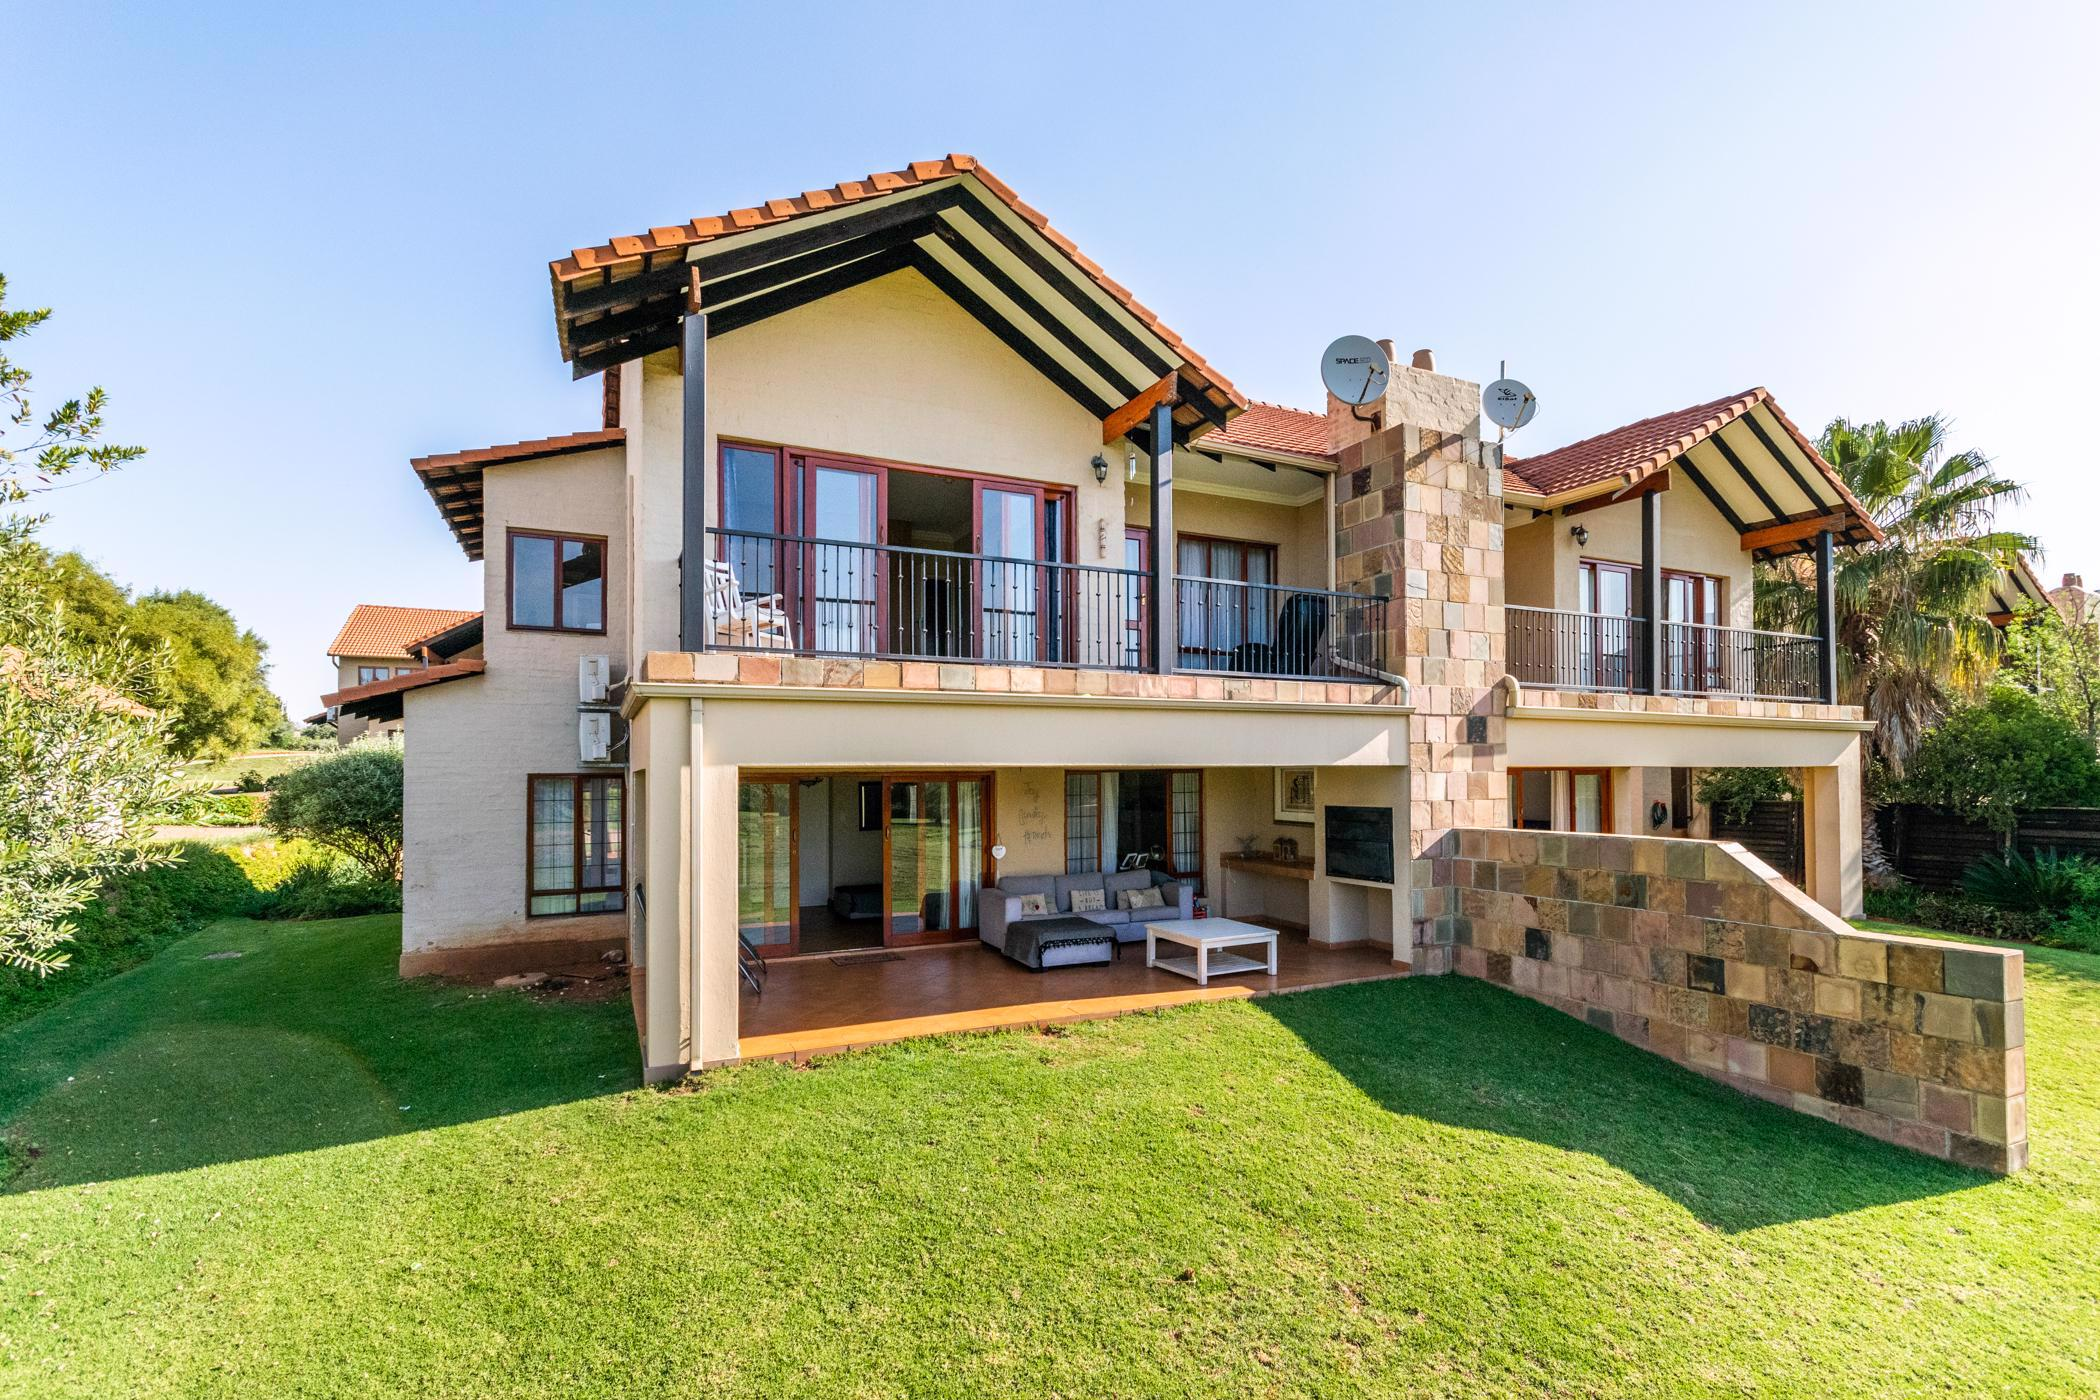 https://listing.pamgolding.co.za/images/properties/201909/395757/H/395757_H_17.jpg